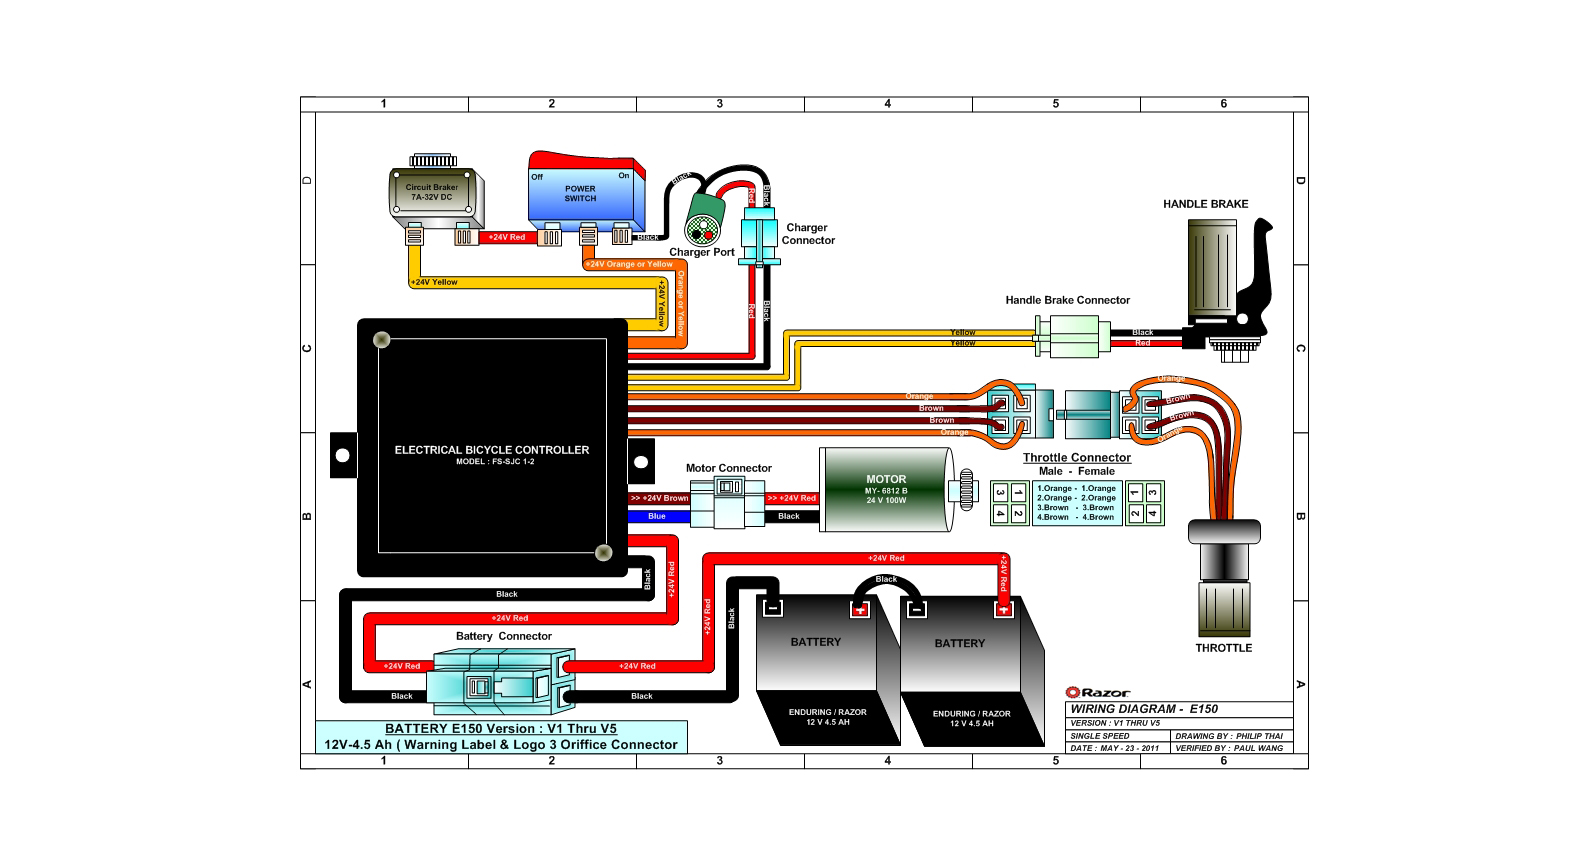 2006 Tank 150 Scooter Wiring Diagram Library 150cc Gy6 Wire Harness Razor E1 Series Diagrams